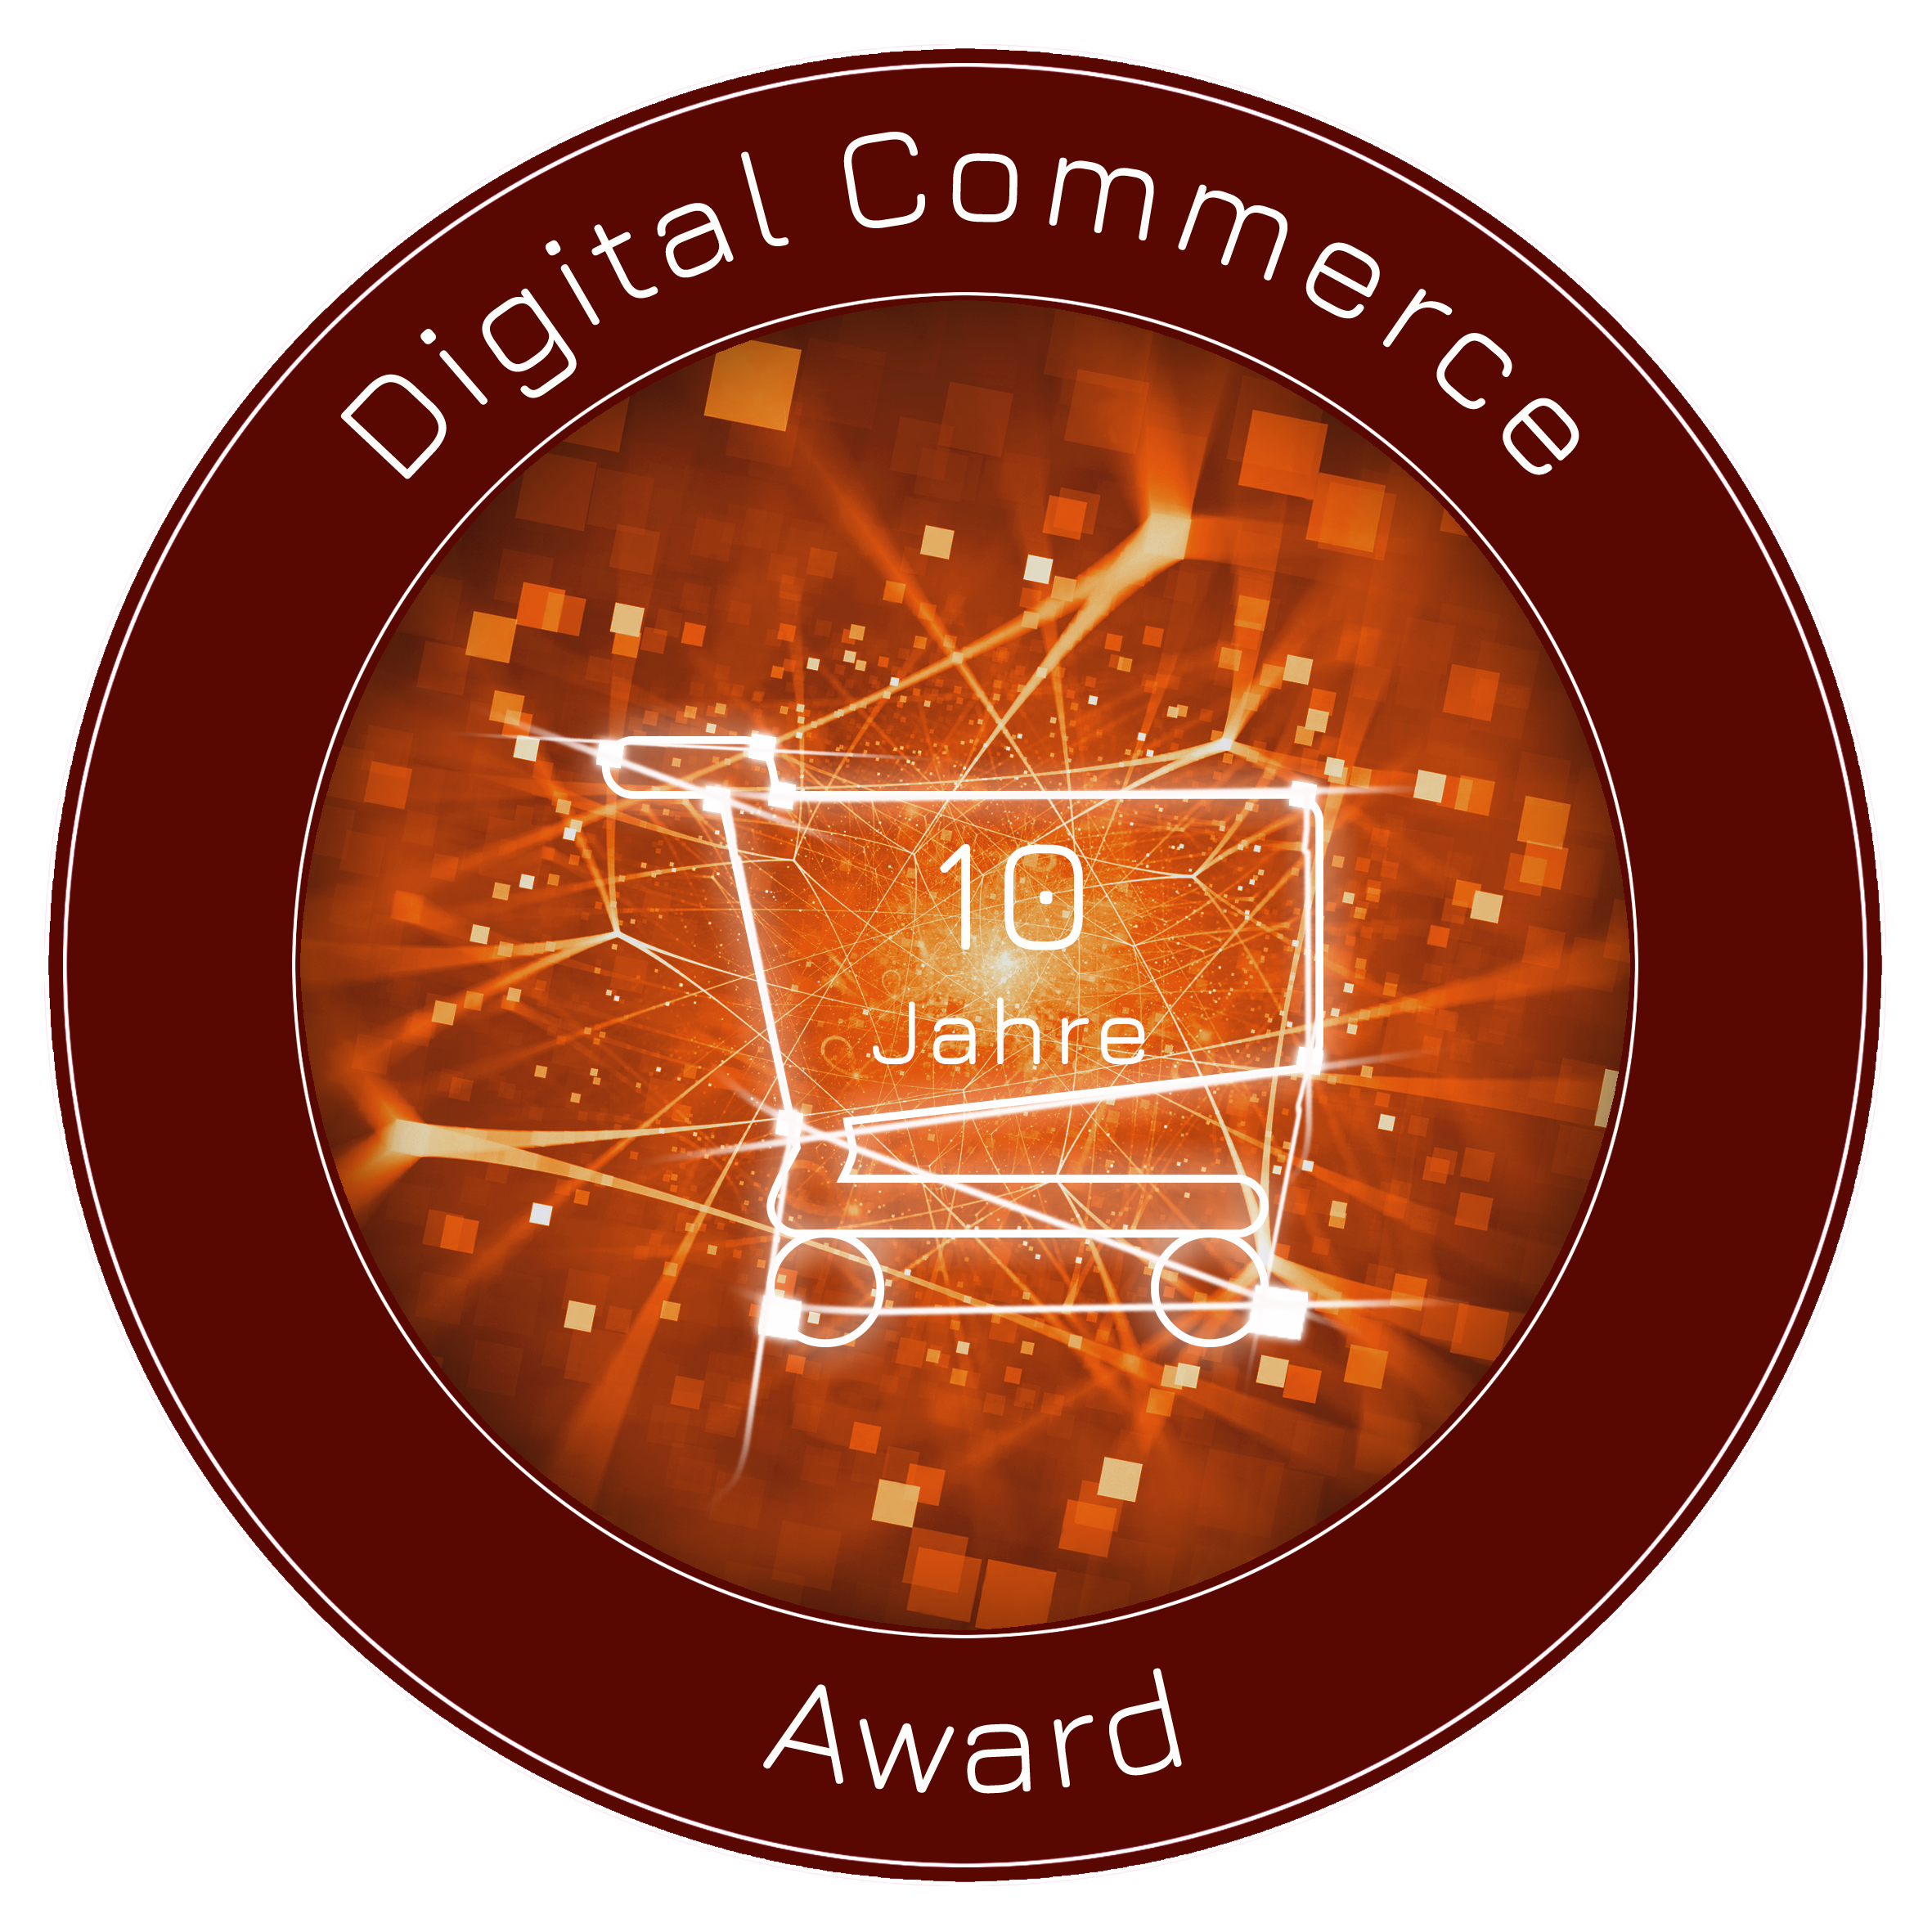 Digital Commerce Award Logo 10-jähriges Jubiläum